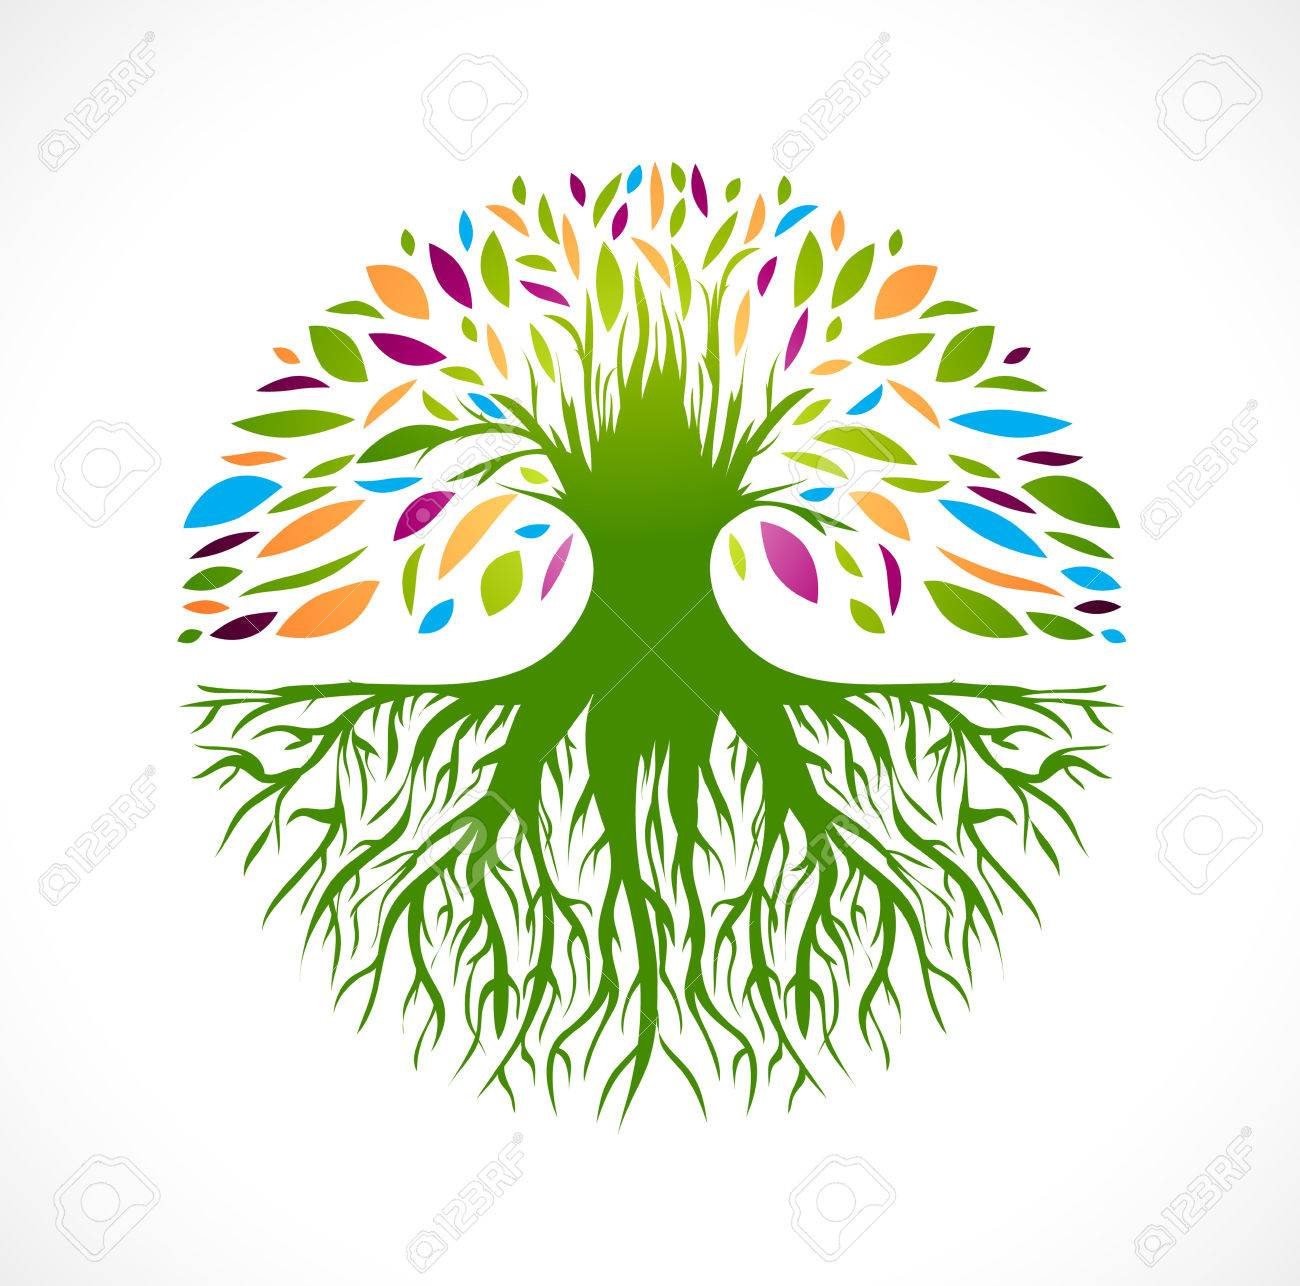 Illustration of Multicolored Round Abstract Vitality Tree - 38935818